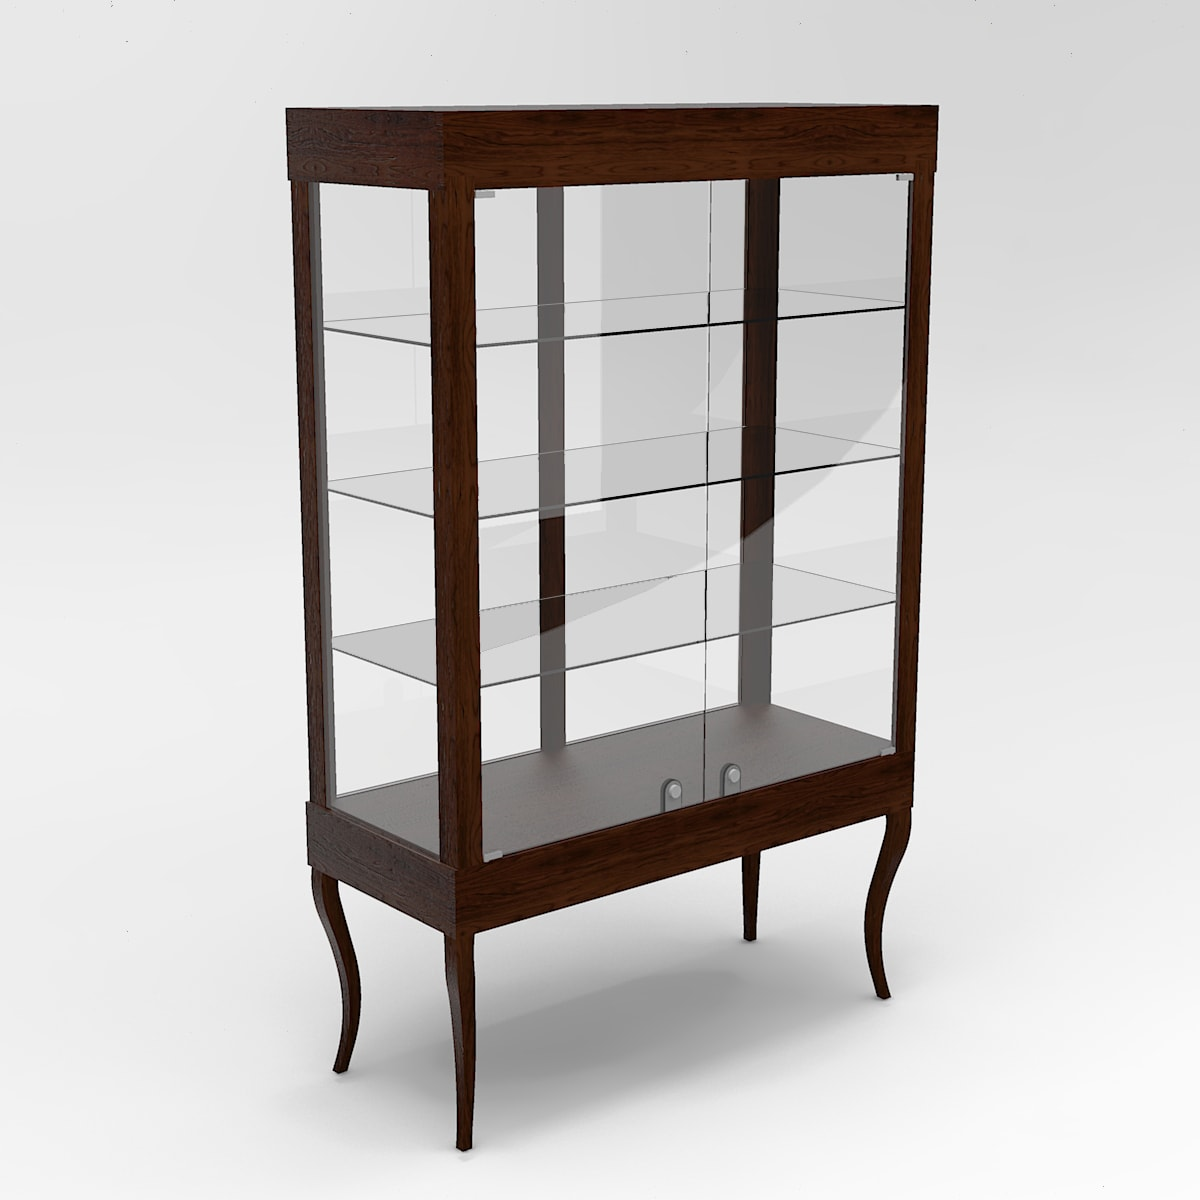 Extended Country French Leg Rectangle Tower Display Case To Purchase